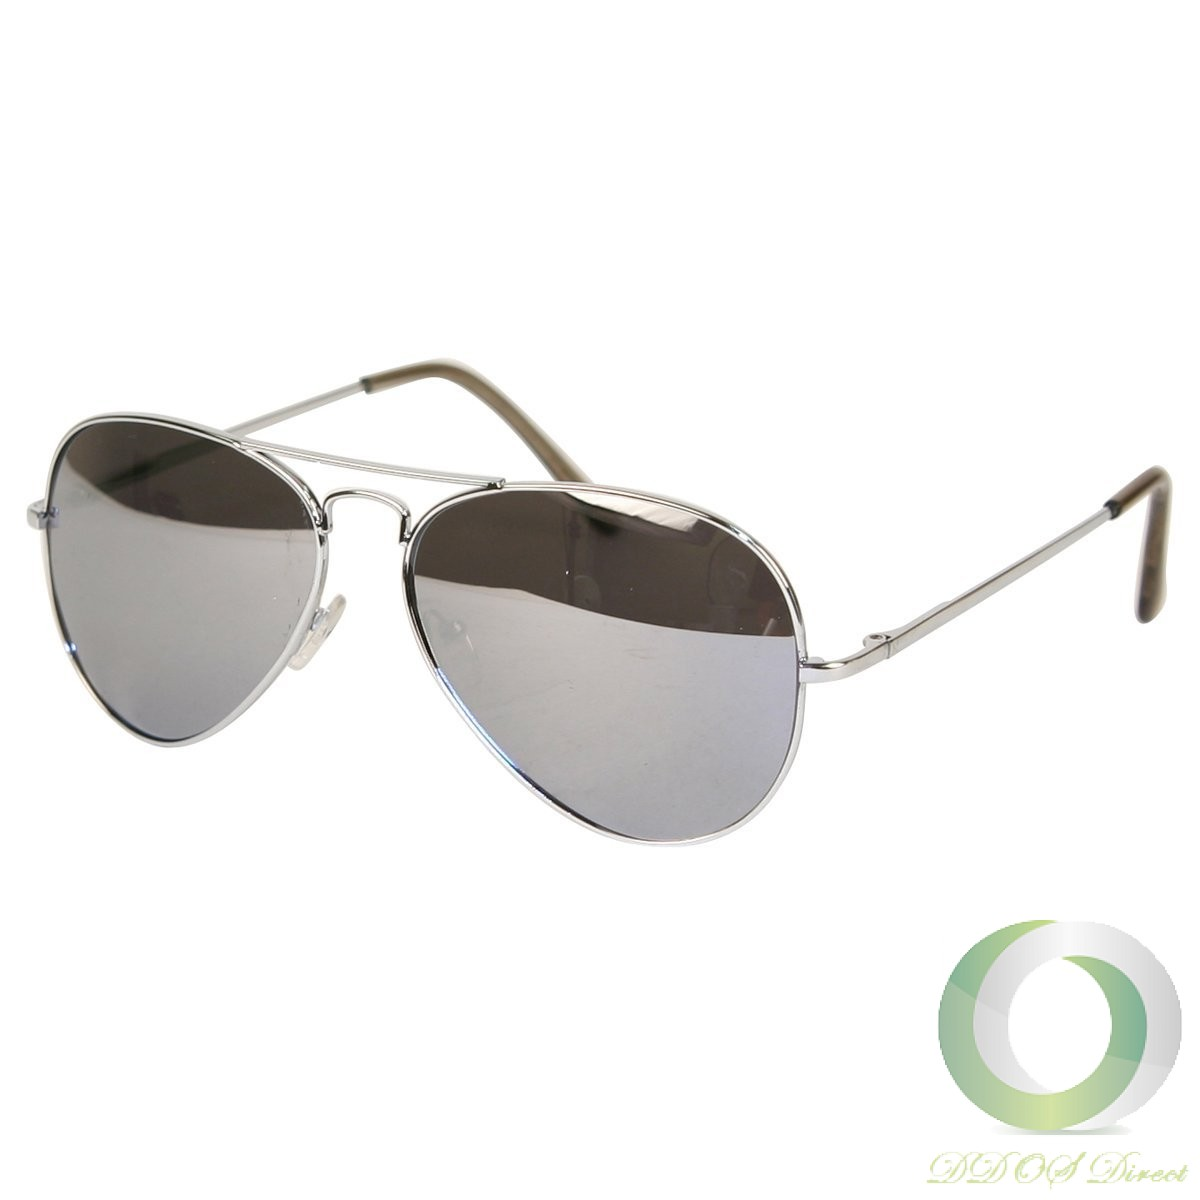 Flash Mirror coating is a half mirror, so people can still see your eyes. Available in silver, gold or blue, flash mirror coating is both a fashion choice and a functional choice. The flash mirror helps to reduce glare coming off snow, water, and other shiny surfaces.